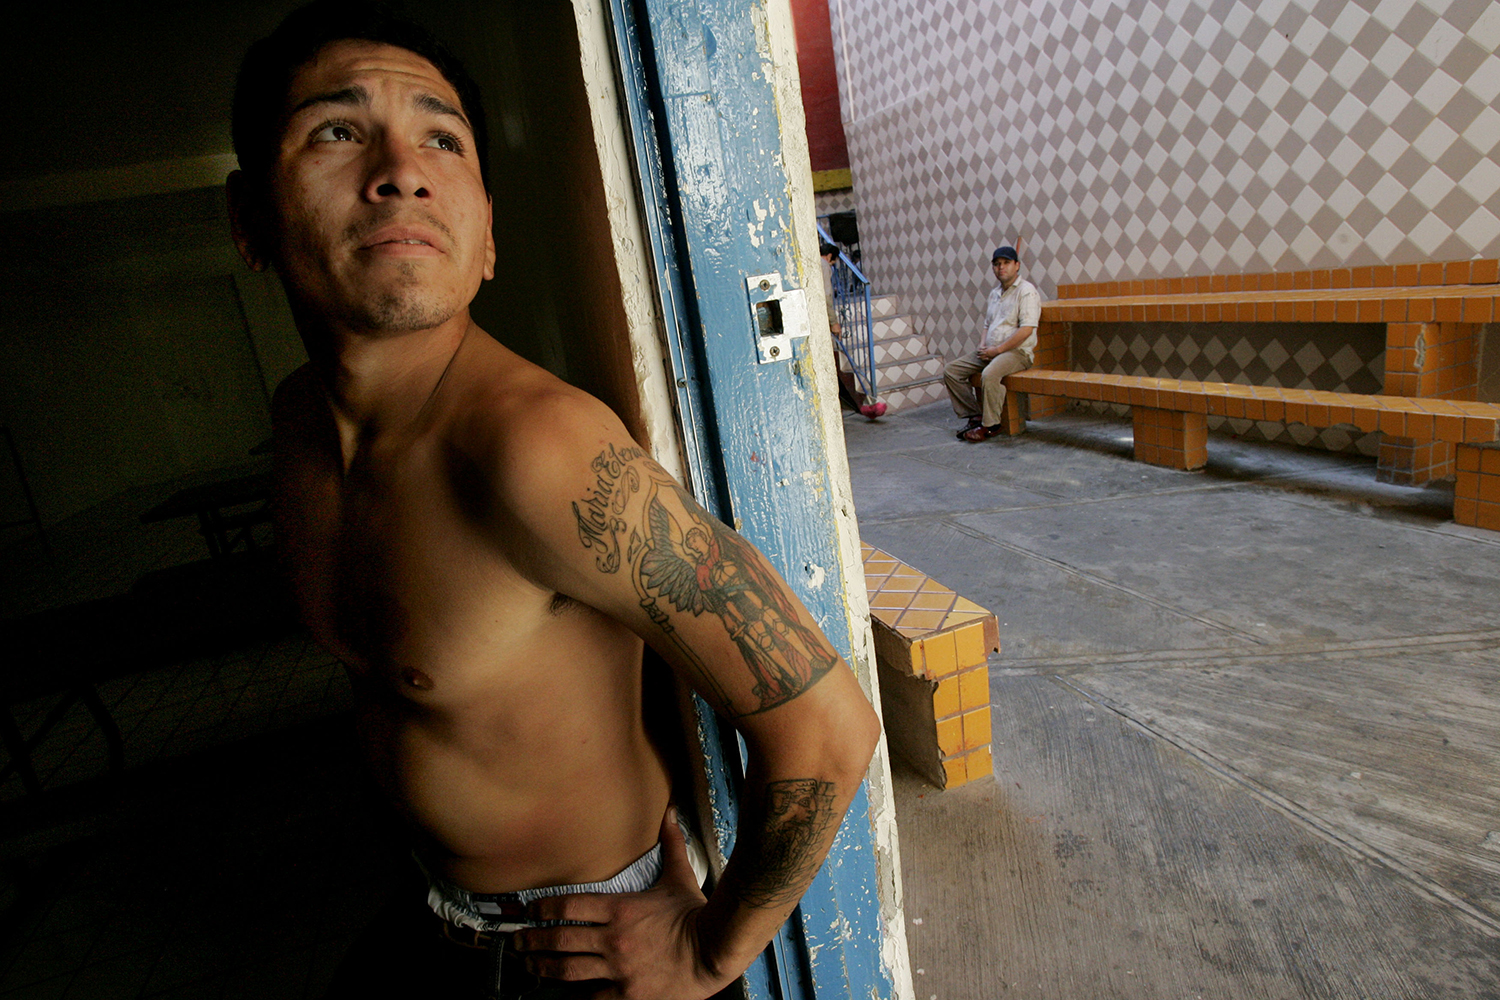 A recovering heroin addict stands in a doorway after exercising at the Los Tesoros Escondidos Drug Rehabilitation Center in Tijuana, Mexico, on Dec. 14, 2006.